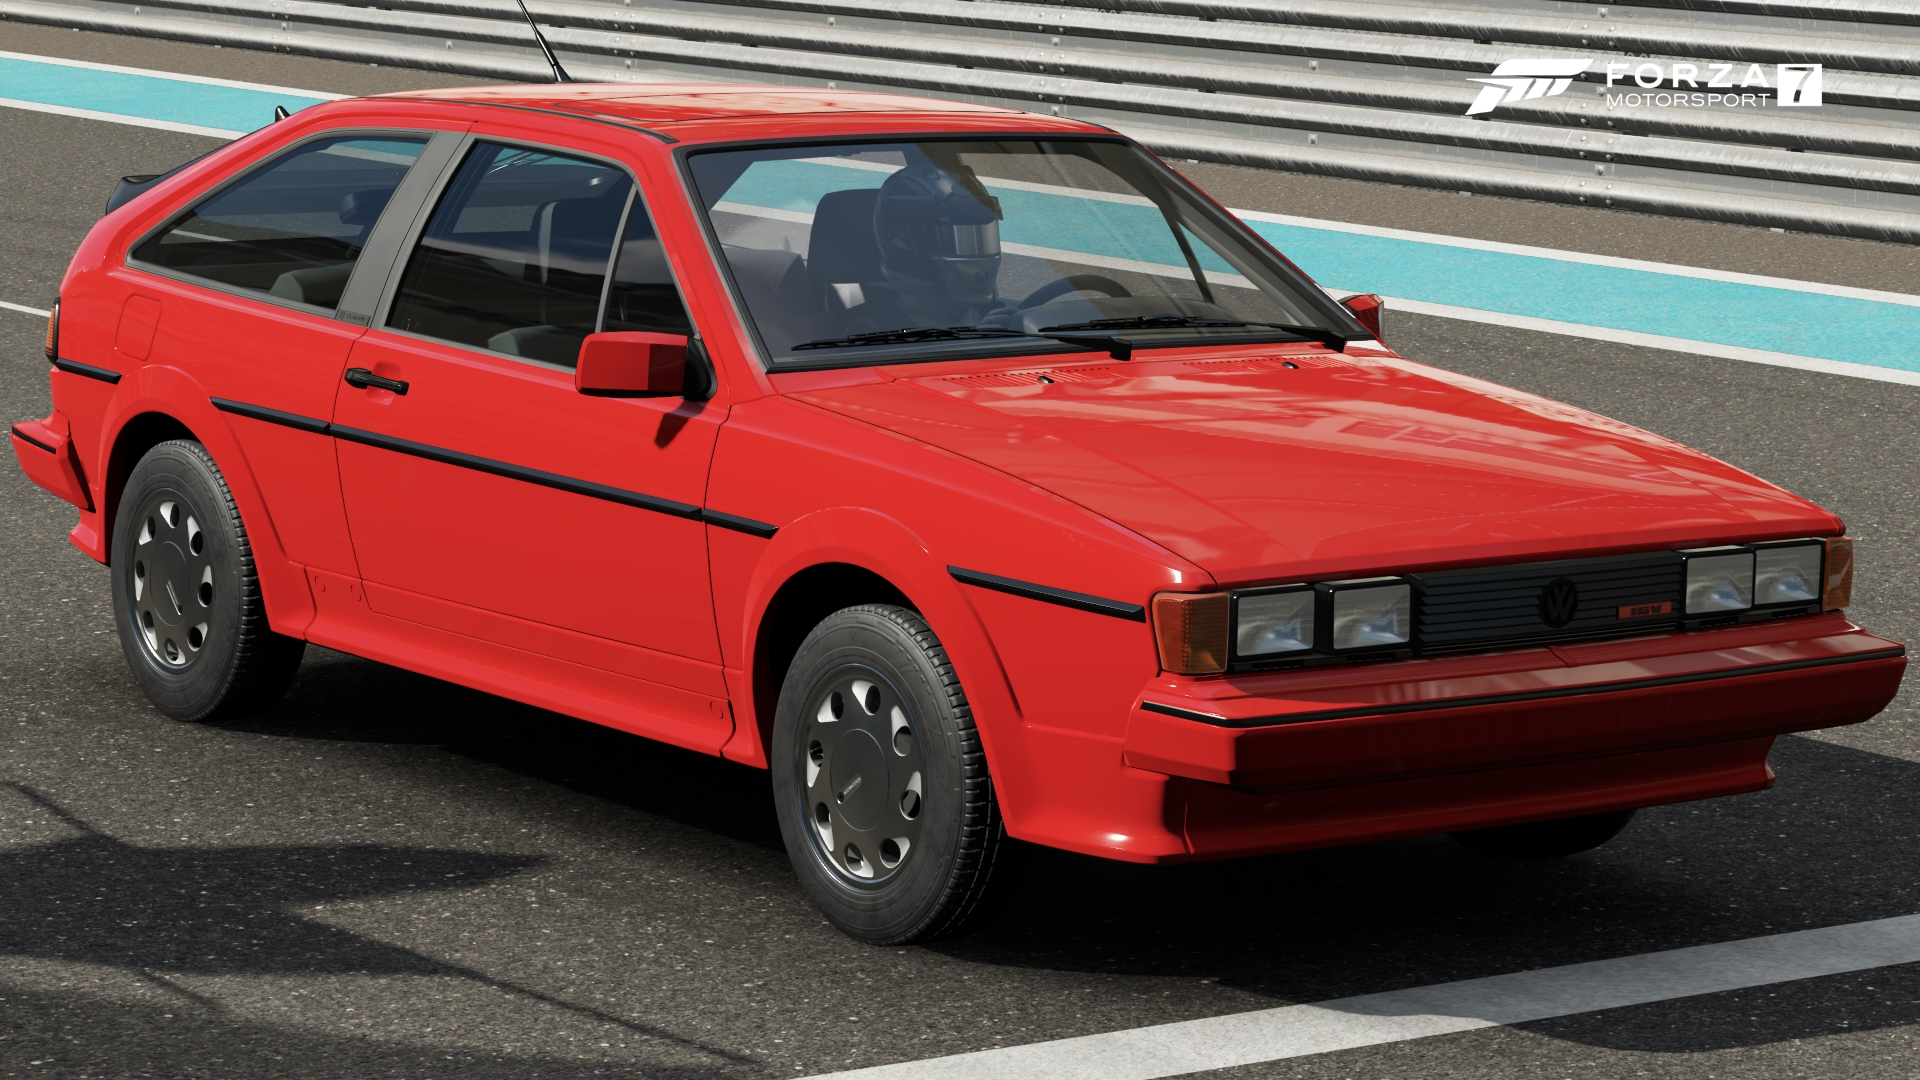 Volkswagen Scirocco 16v | Forza Motorsport Wiki | FANDOM powered by